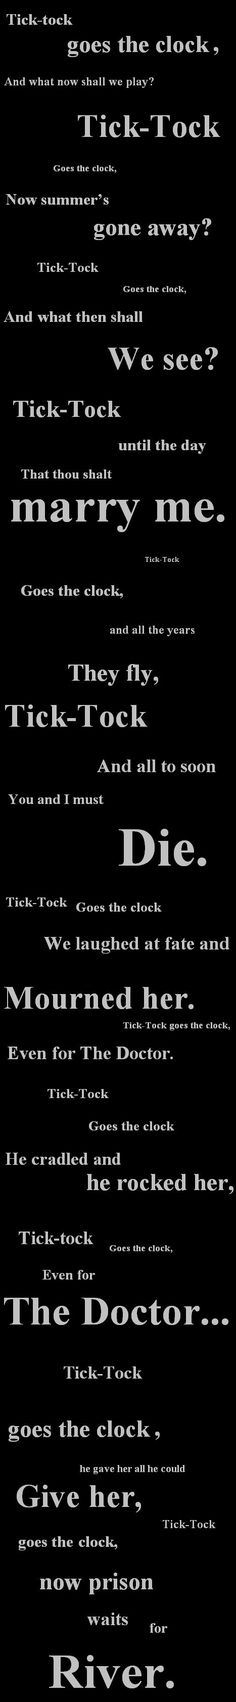 Tick tock goes the clock...even for the Doctor...